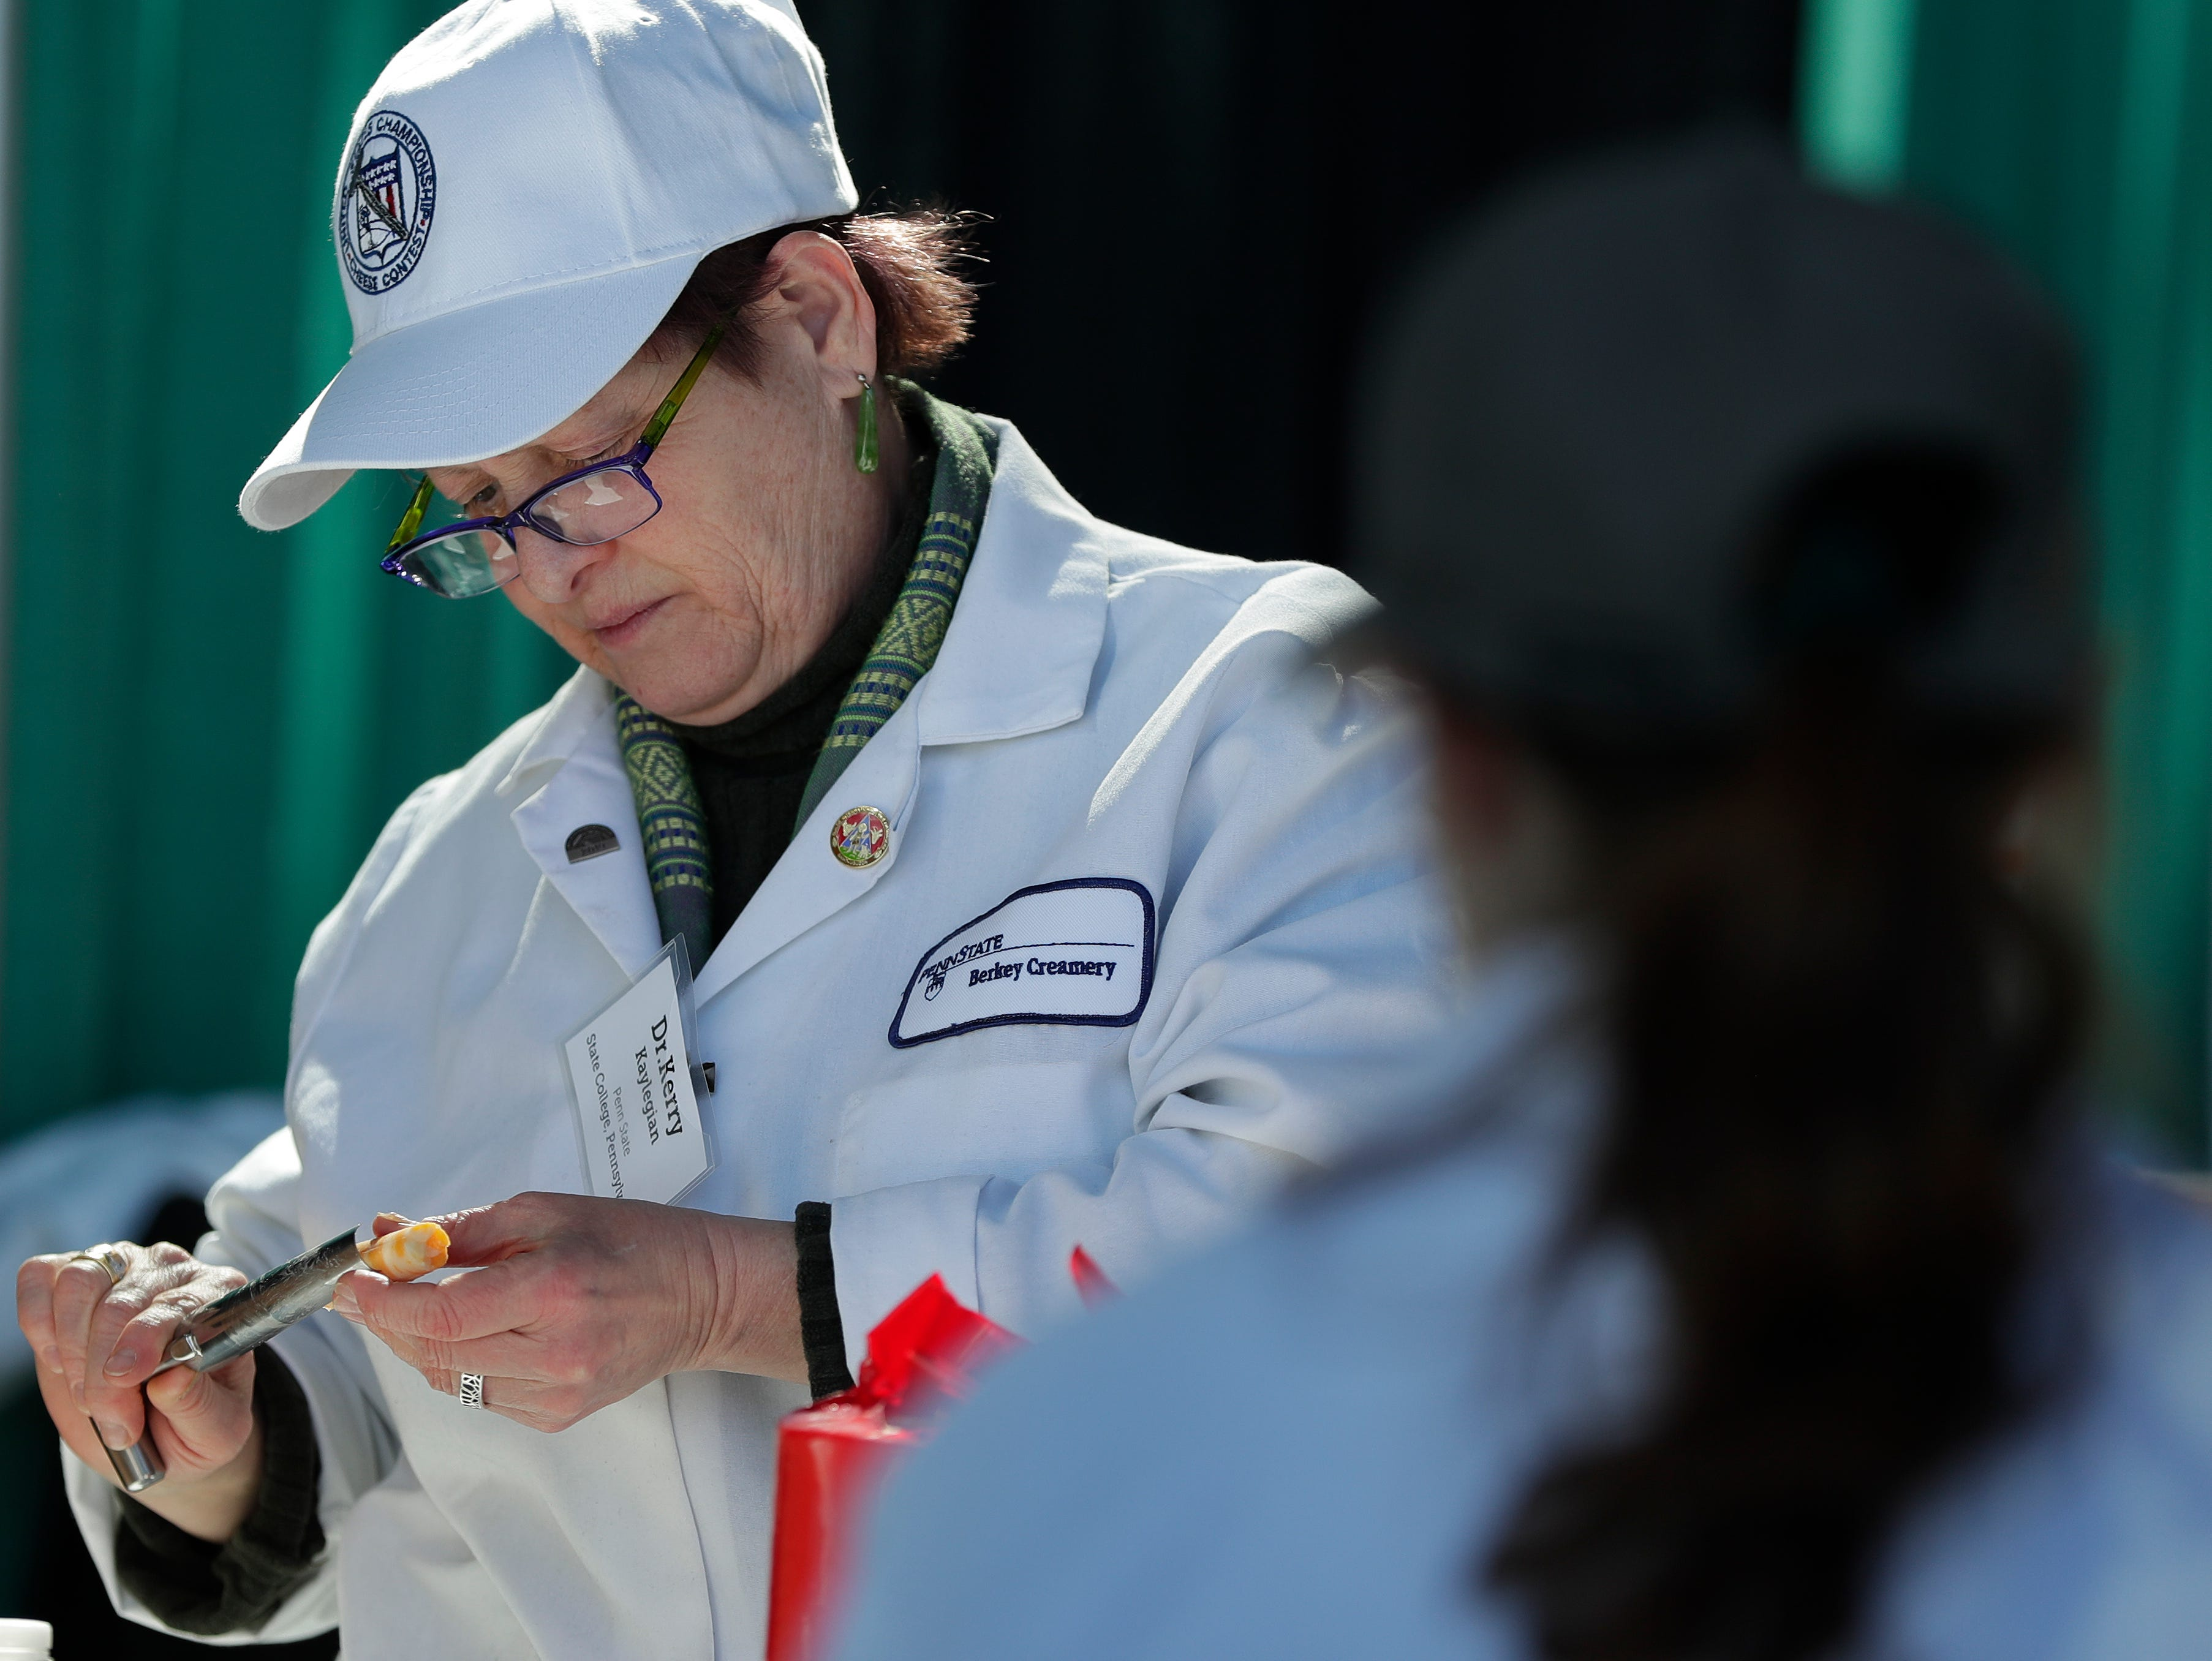 Dr. Kerry Kaylegian of Penn State University examines a piece of cheese at U.S. Championship Cheese Contest on March 5, 2019 at Lambeau Field in Green Bay, Wis.